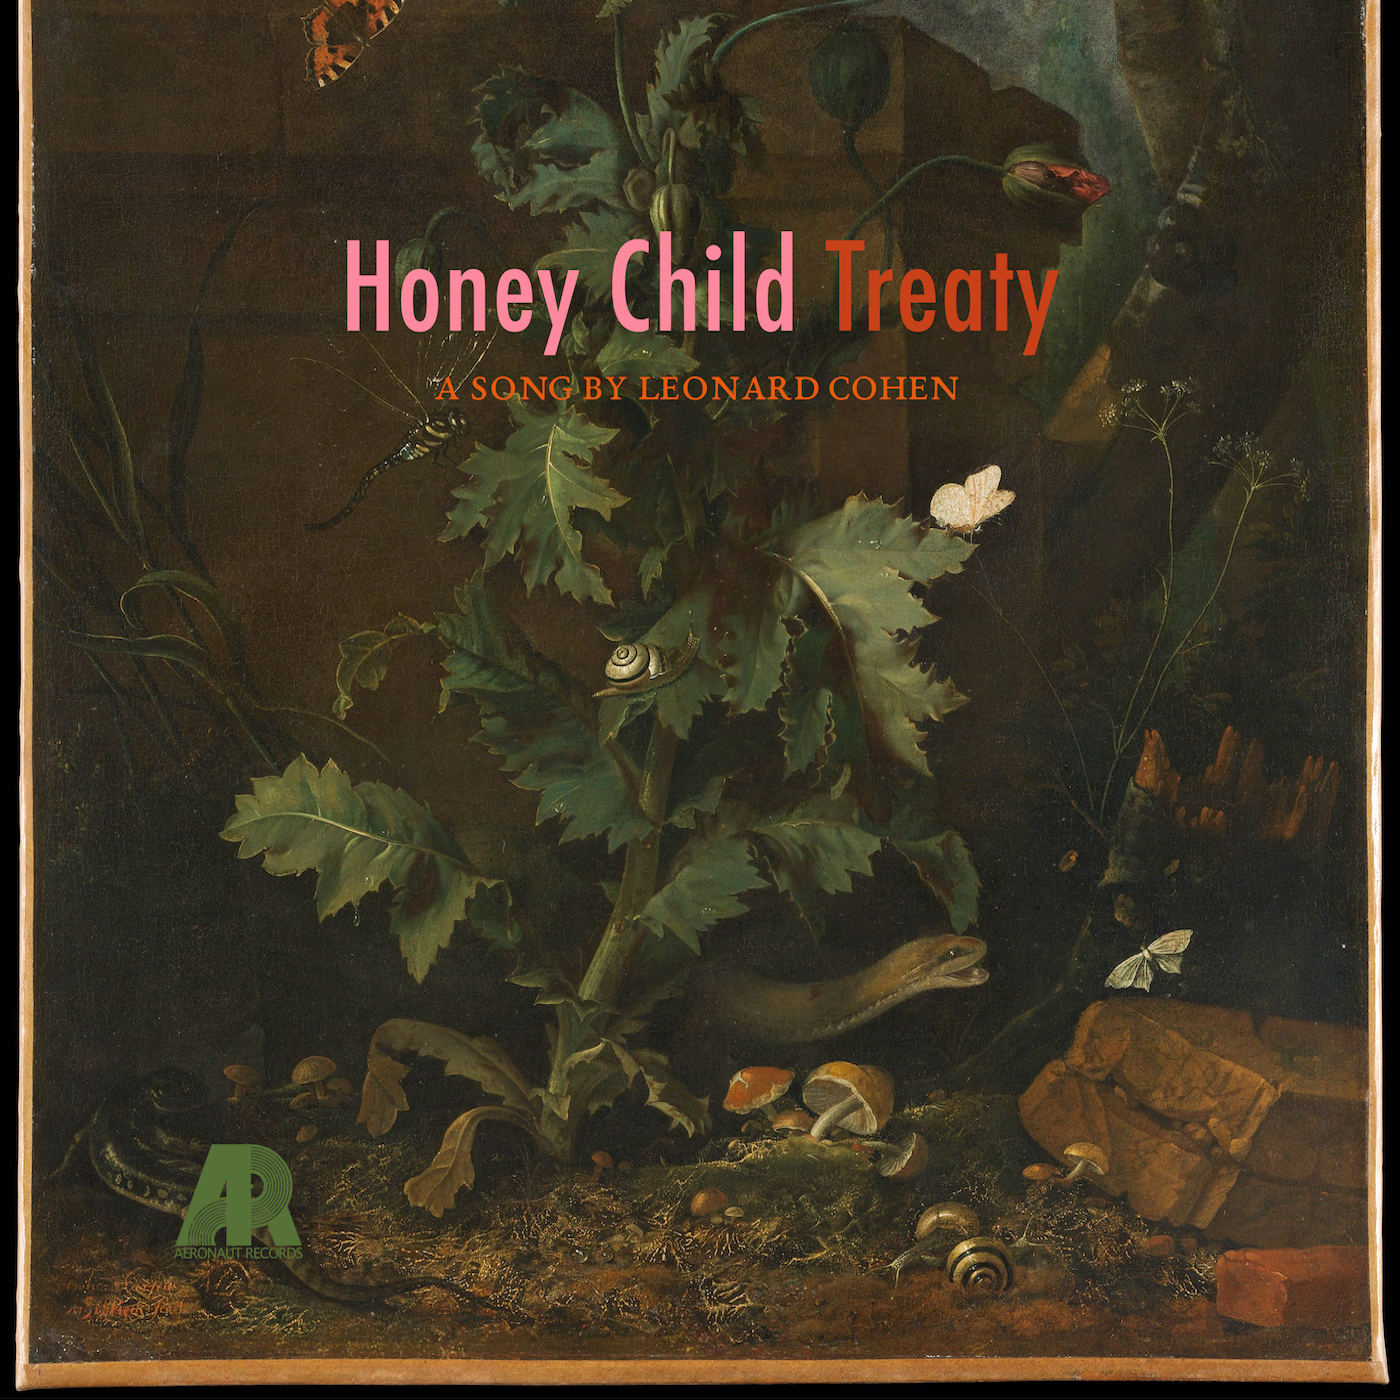 Honey Child  Treaty